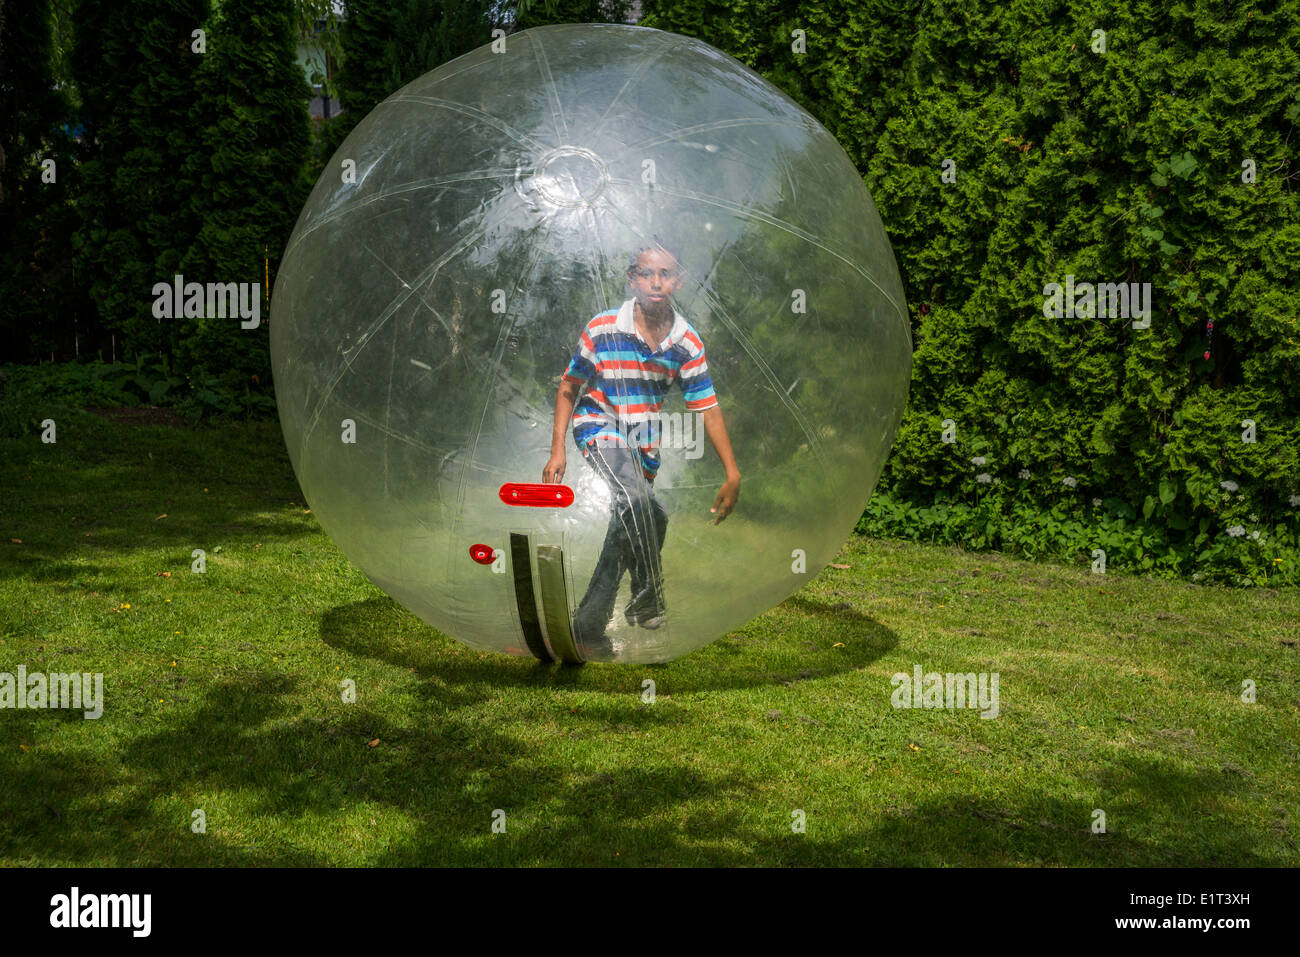 Boy in a bubble ball. - Stock Image